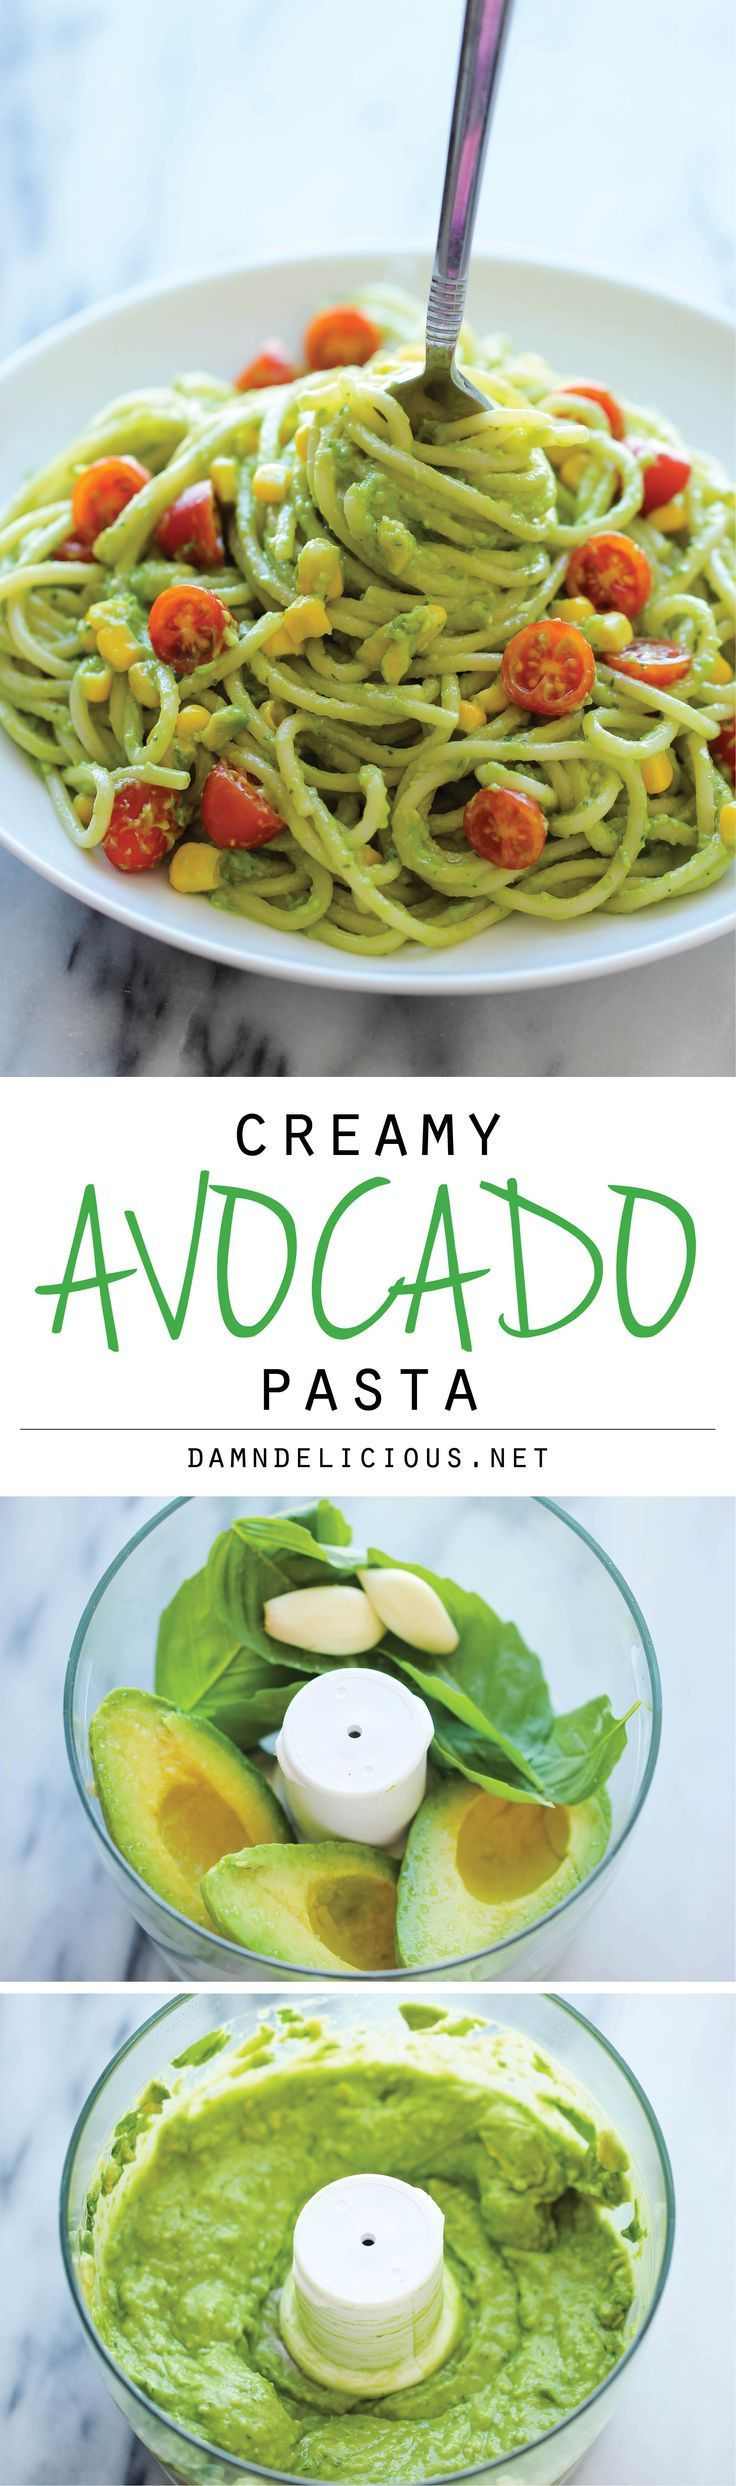 Clean Eating Avocado Pasta Recipe plus 28 more of the most pinned Clean Eating recipes.